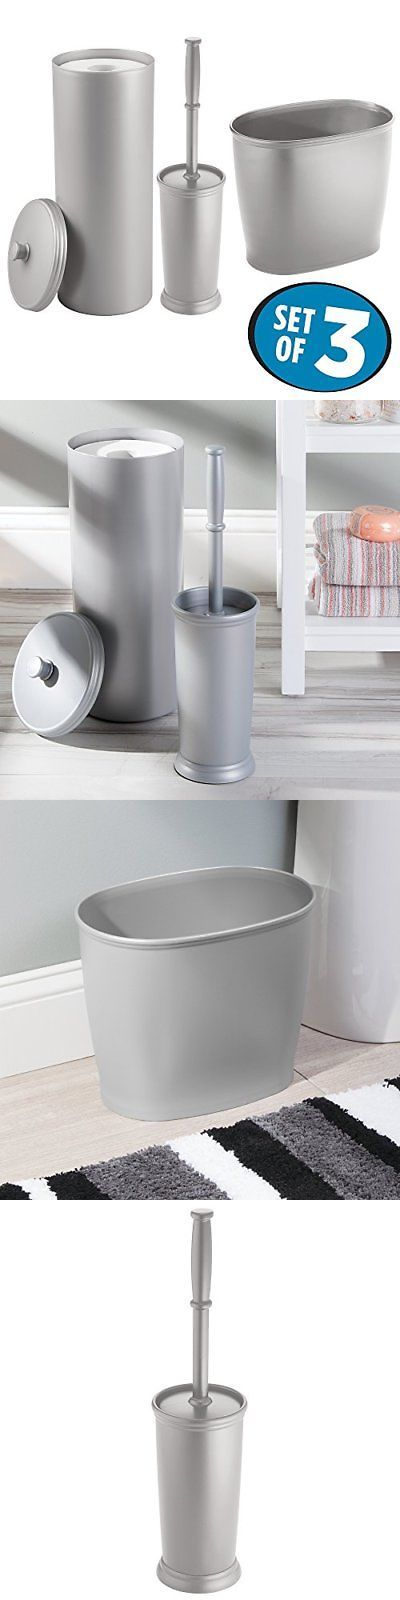 Toilet Brushes and Sets 66723: Mdesign Toilet Paper Roll Holder, Bowl Brush, Wastebasket Trash Can For New -> BUY IT NOW ONLY: $35.69 on eBay!